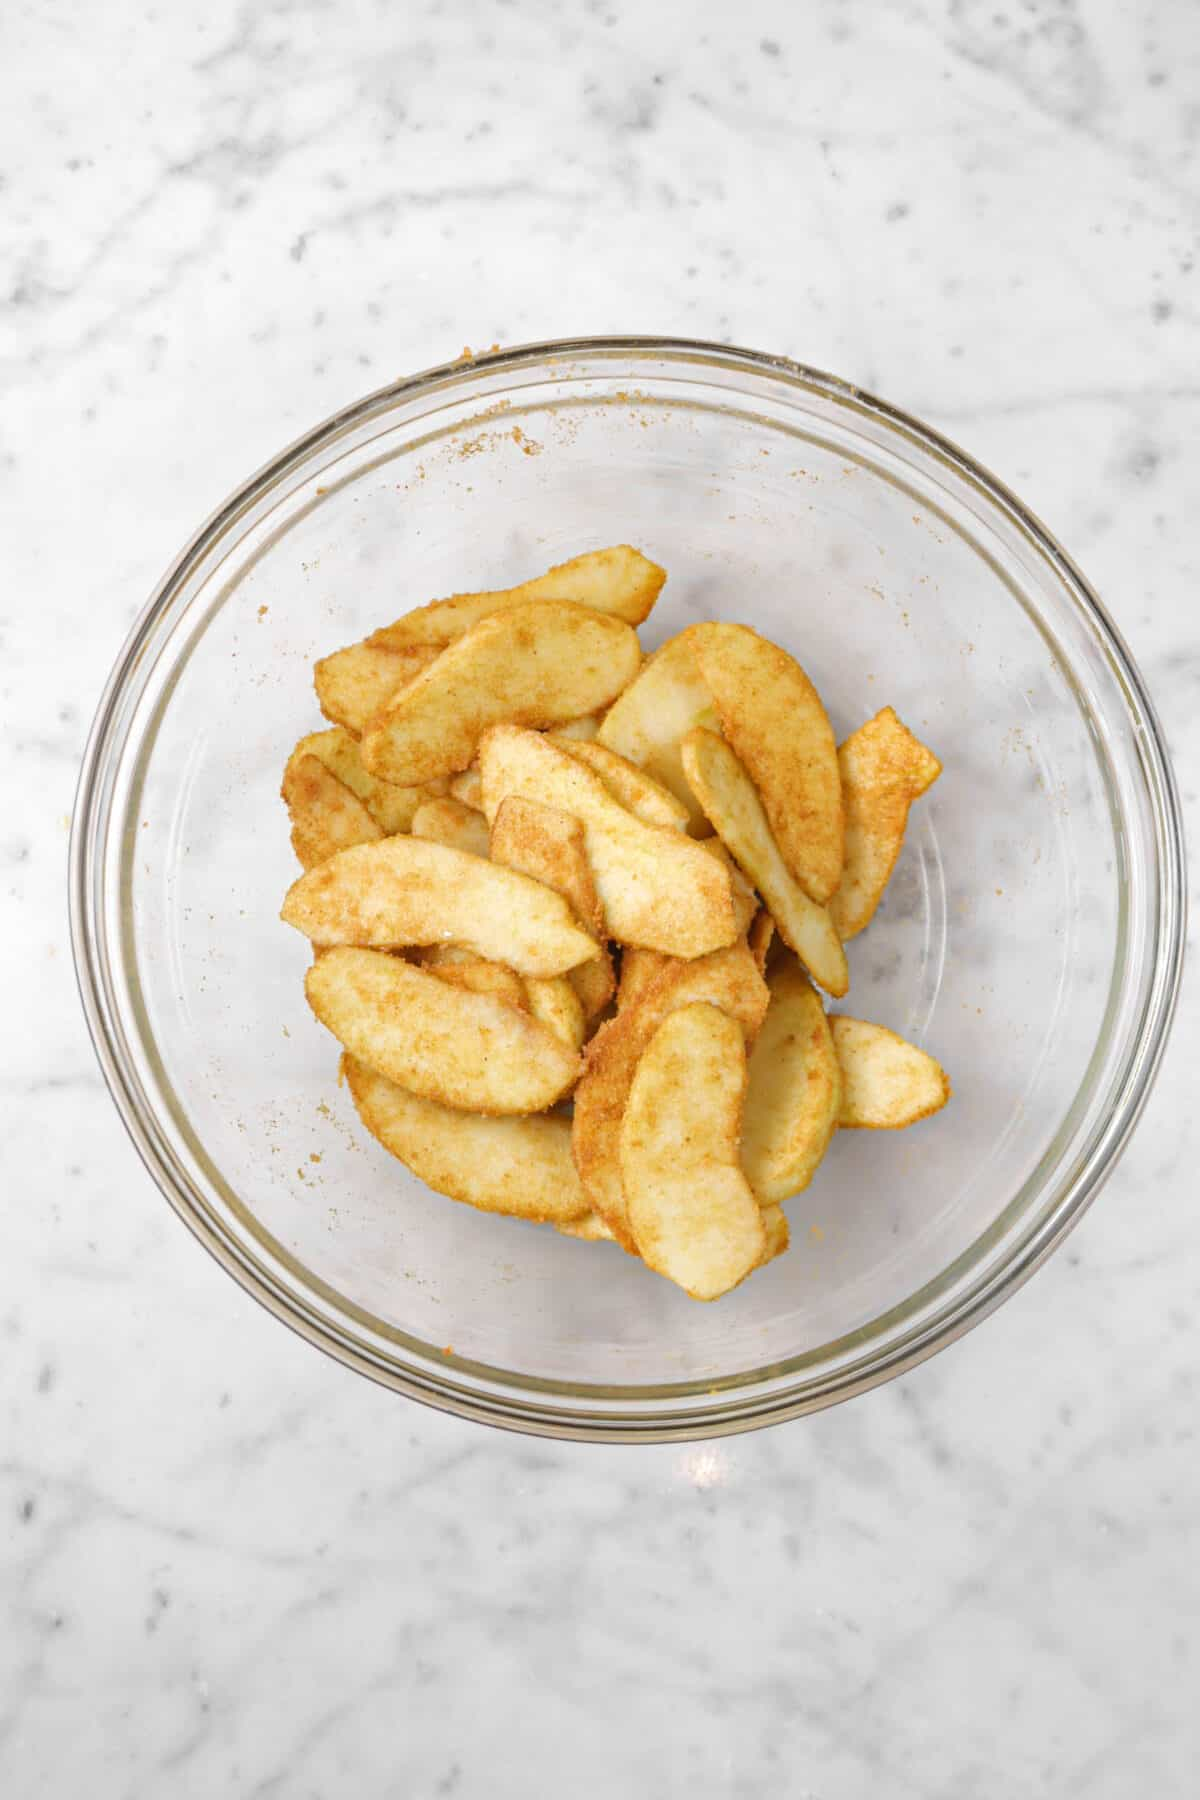 apple slices tossed in cinnamon and sugar